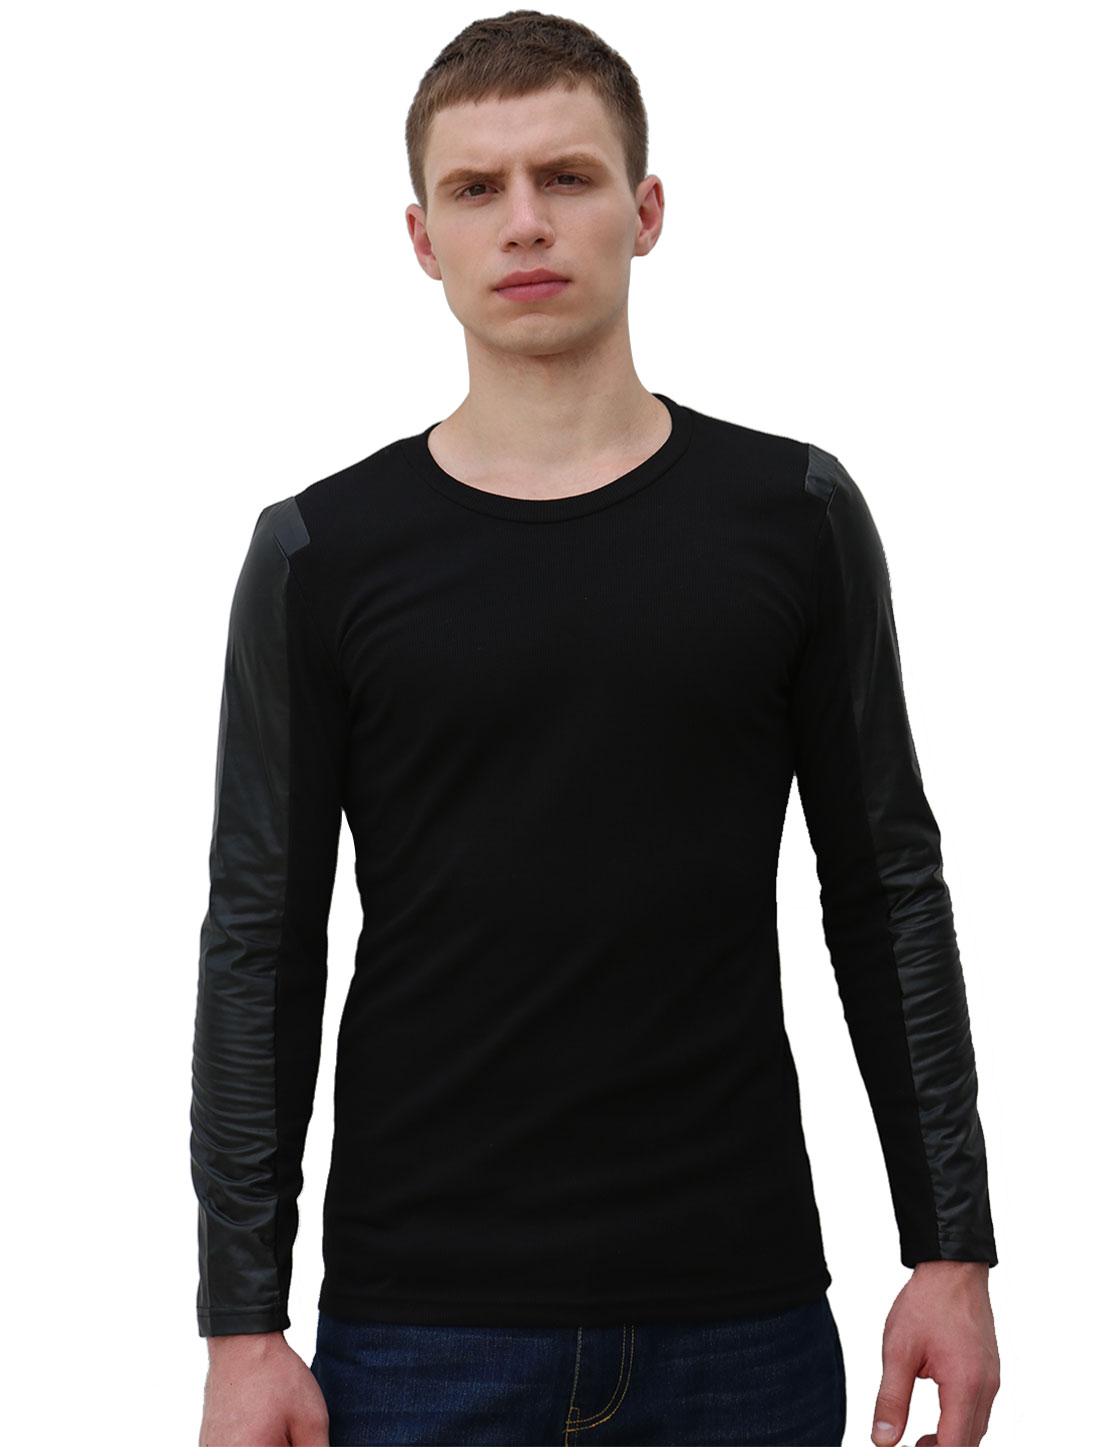 Men PU Leather Panel Long Sleeves Round Neck Ribbed Casual Tee Black XS